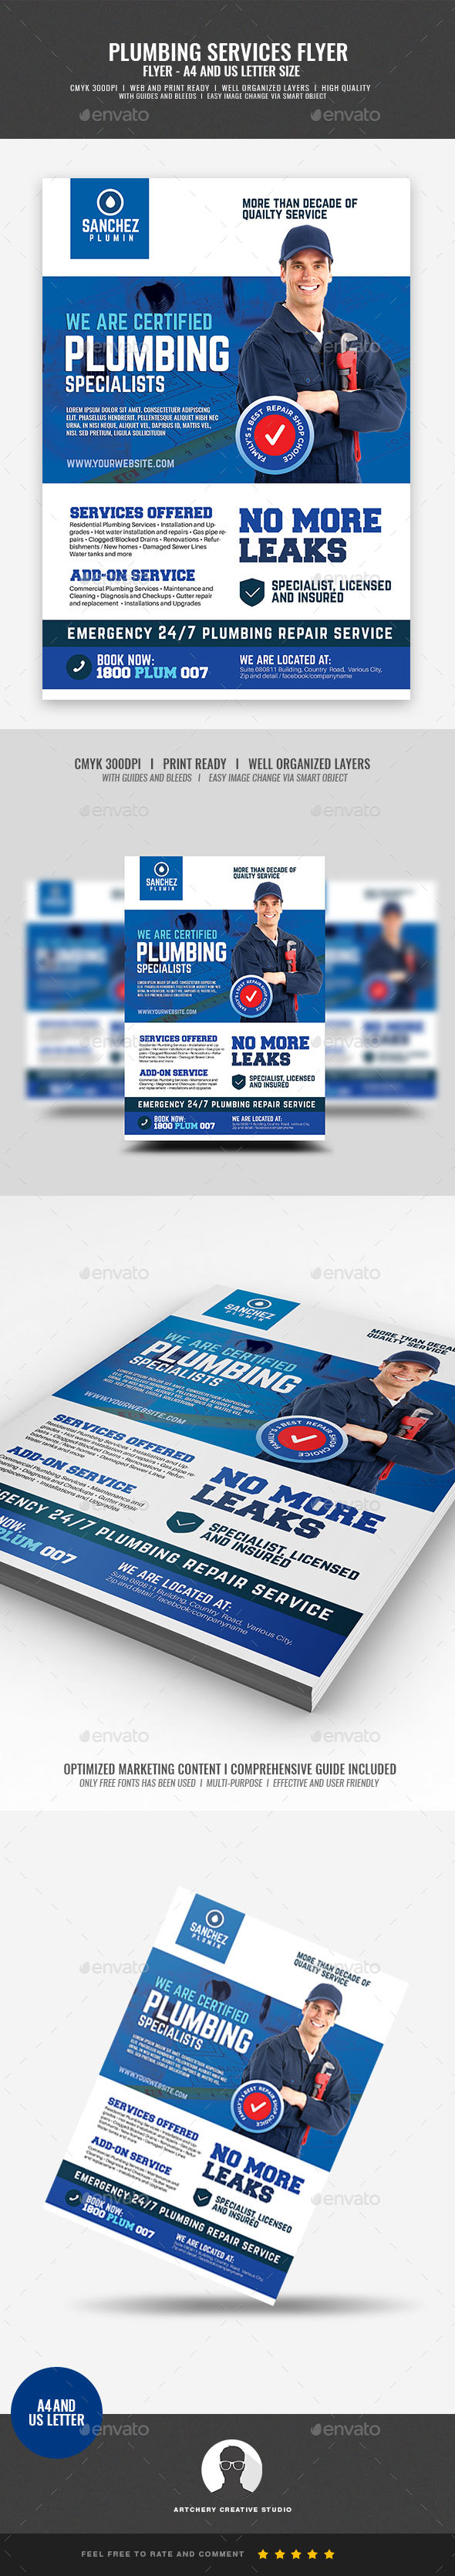 Plumbing Company Promotional Flyer - Corporate Flyers